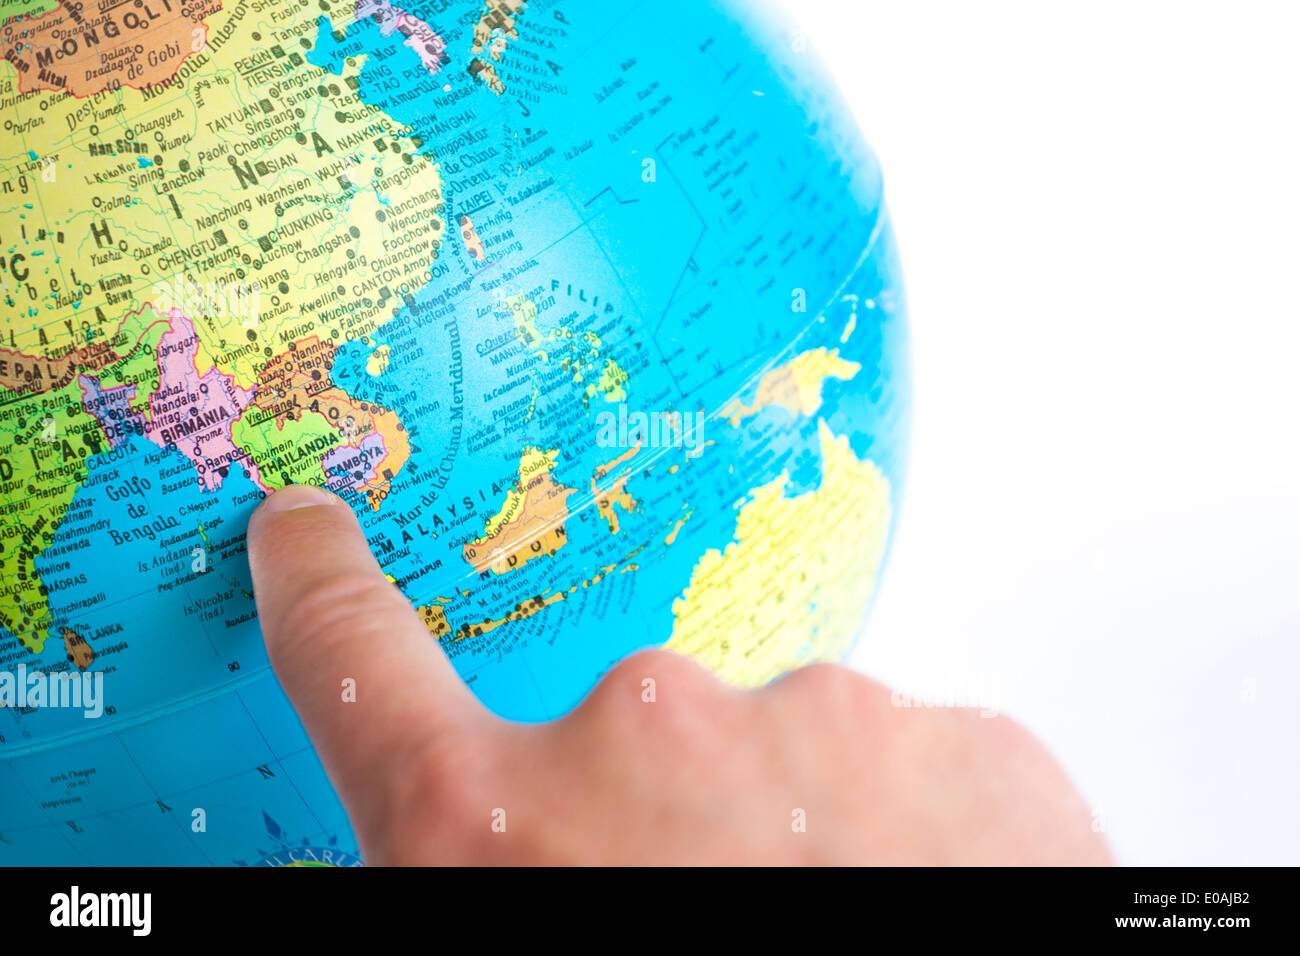 Finger pointing thailand on the global map stock photo 69075414 alamy finger pointing thailand on the global map gumiabroncs Image collections